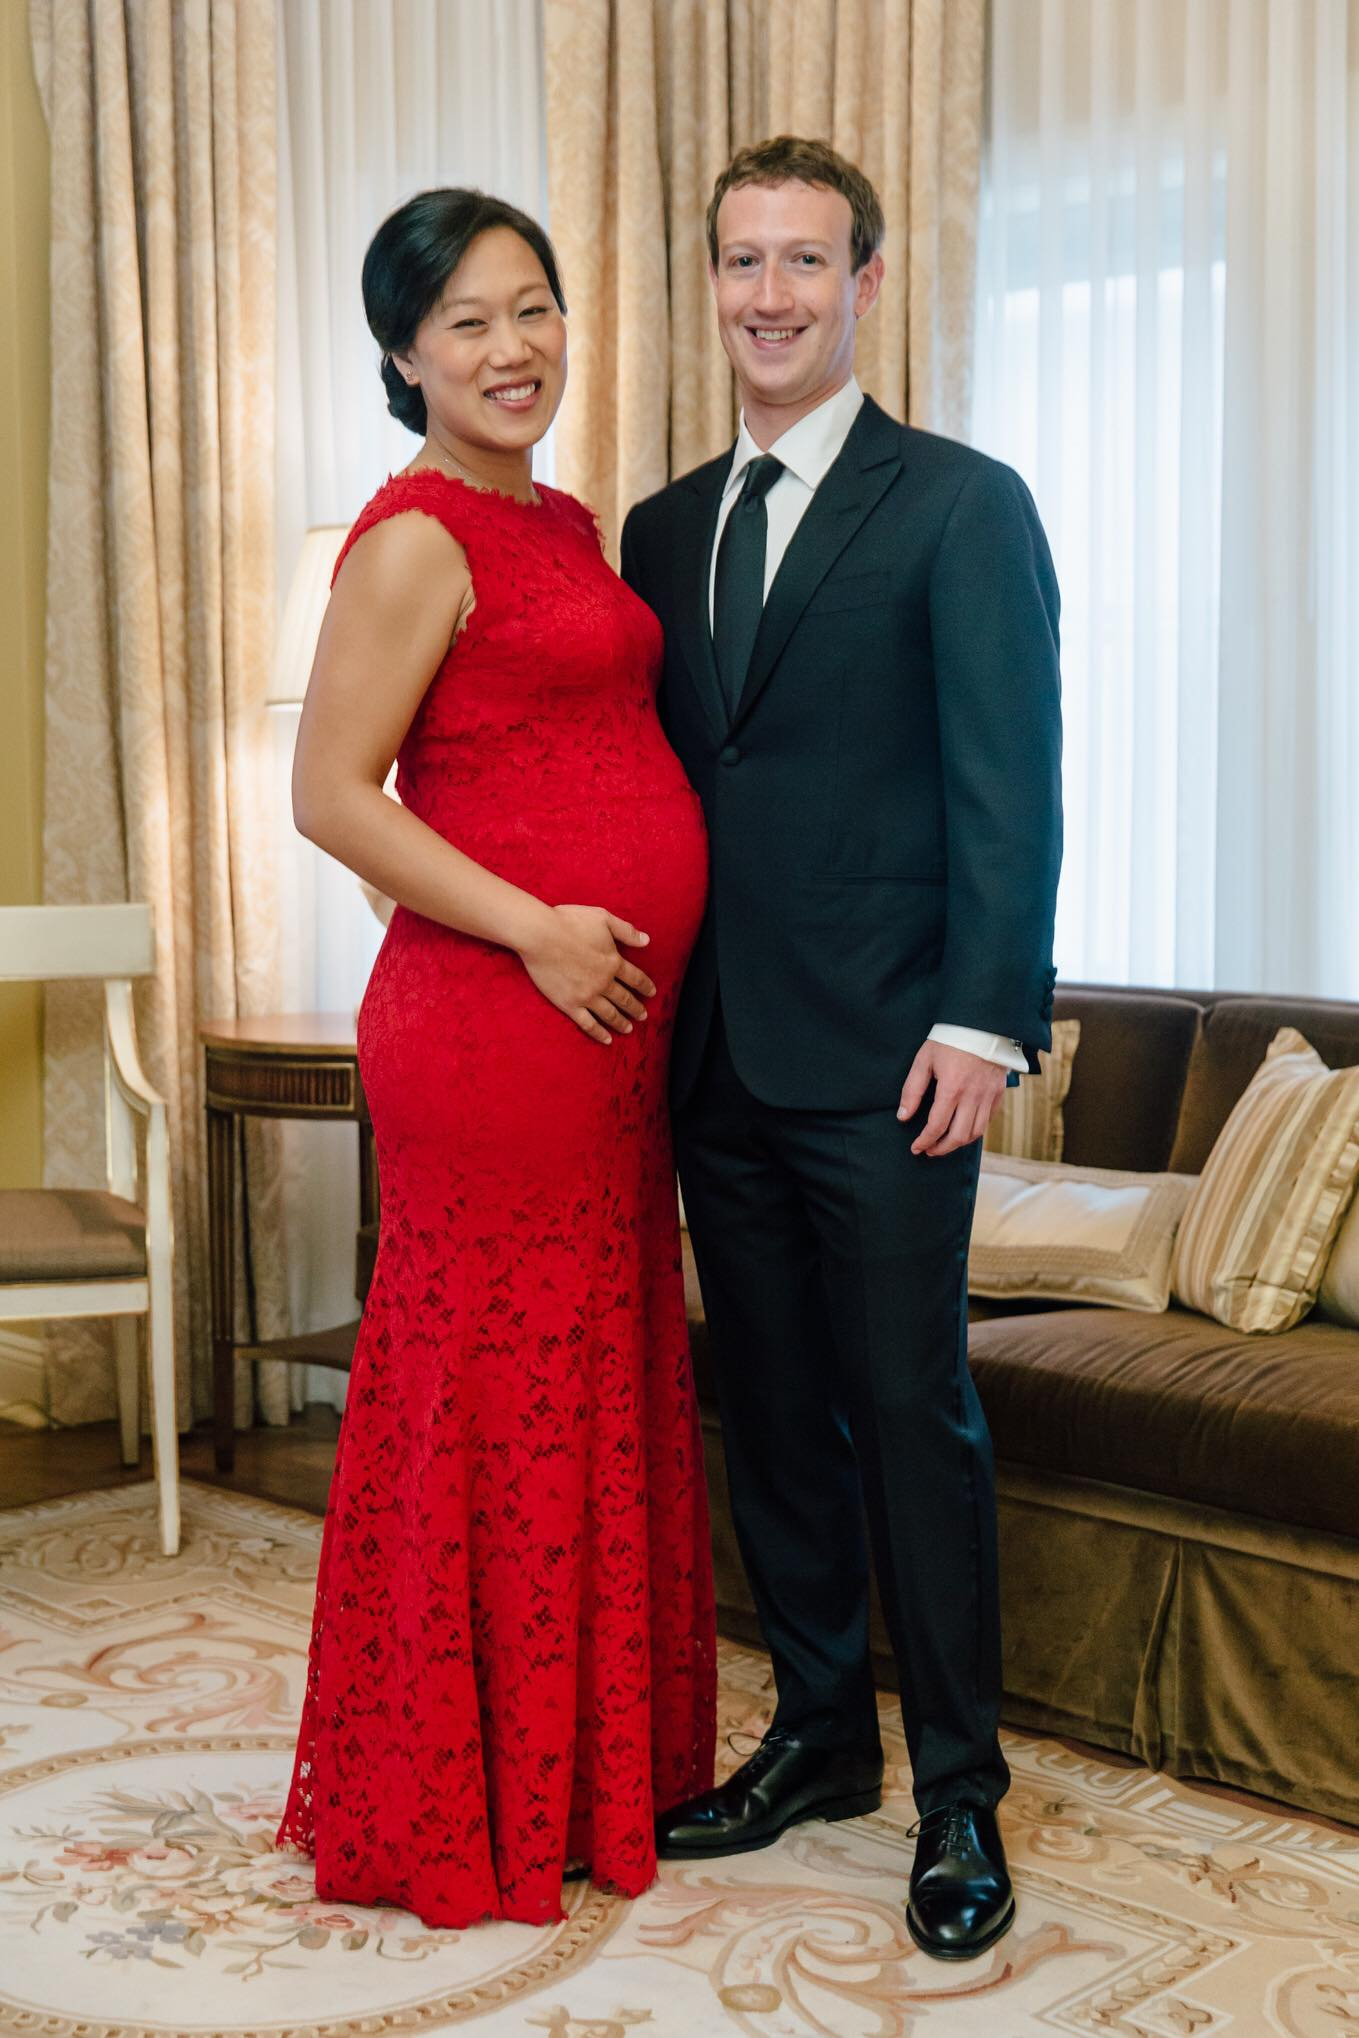 September 25, 2015 Priscilla and I are attending tonight's state dinner for Chinese President Xi Jinping. Here's a photo before we head to the White House. — with Priscilla Chan.